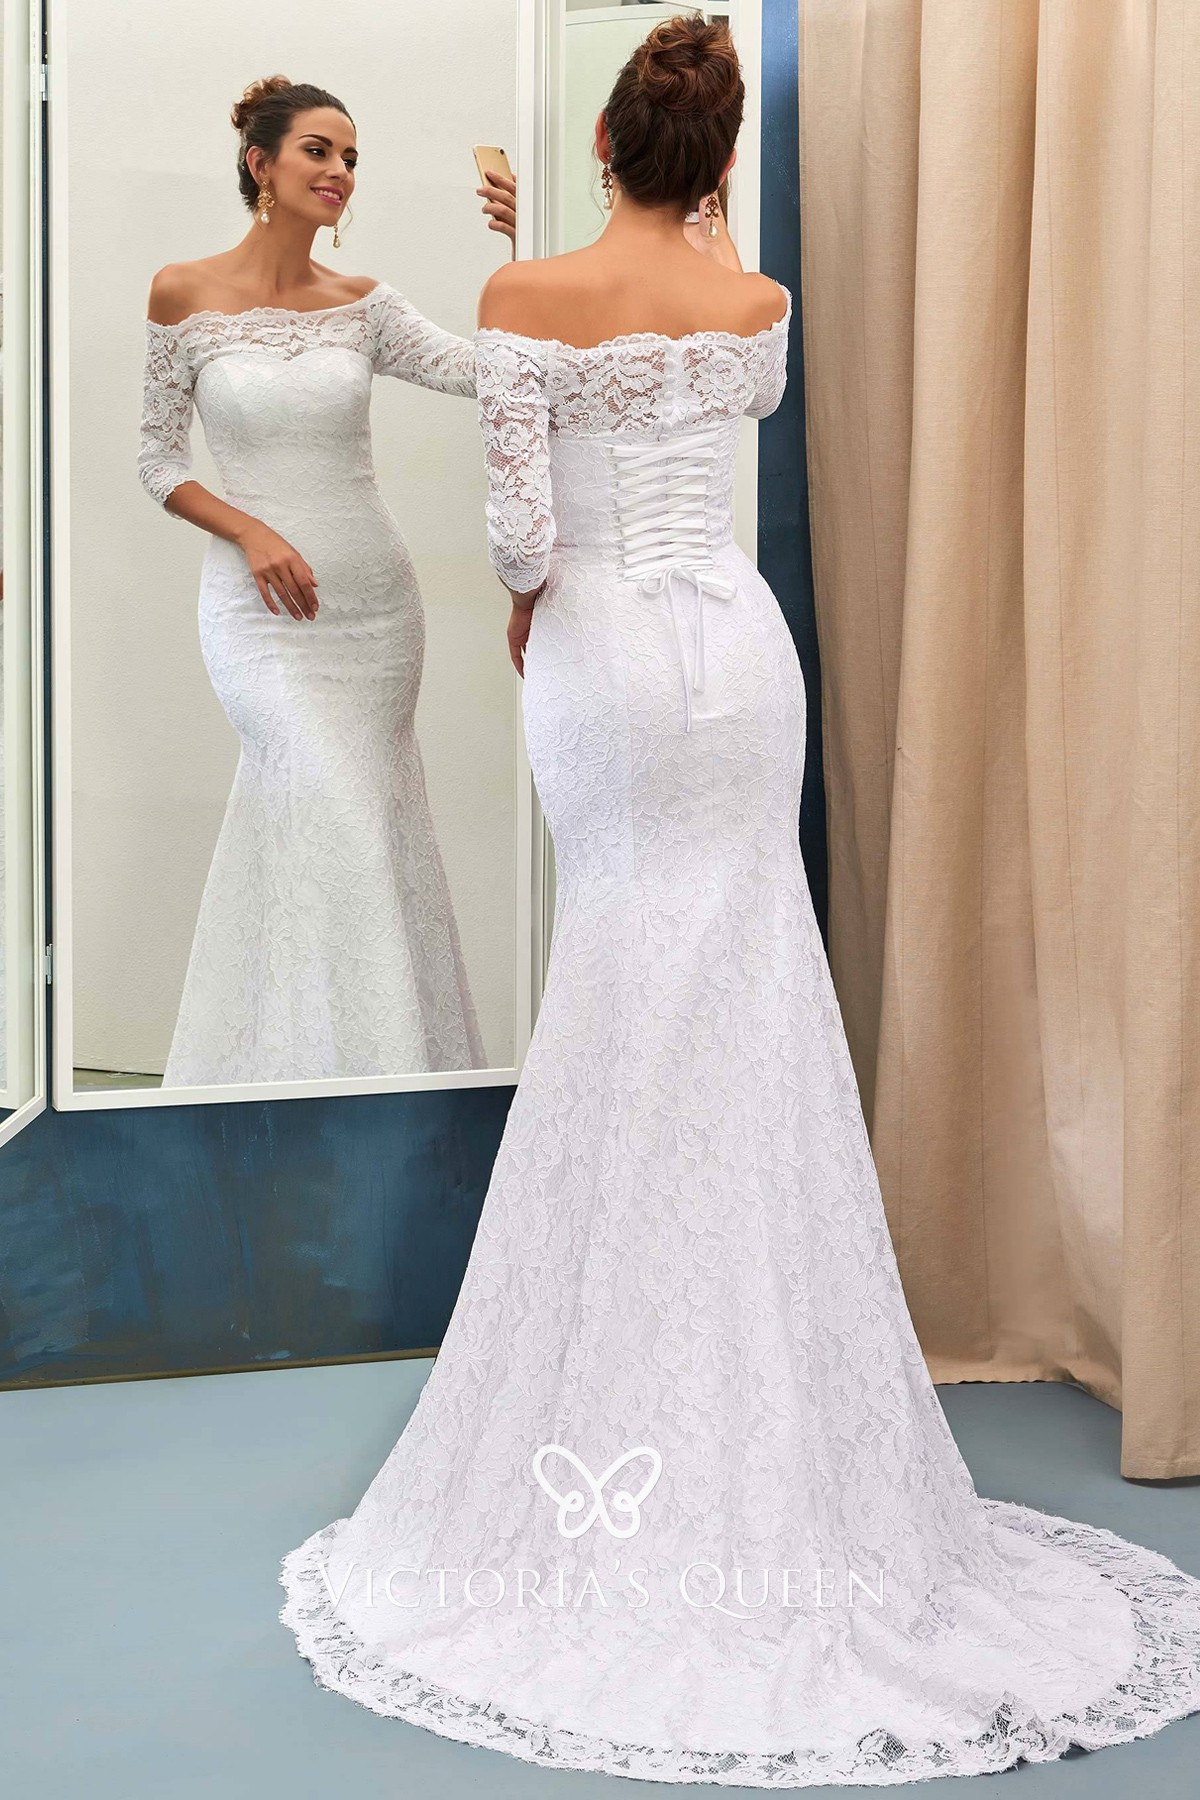 3 4 Sleeve Off Shoulder White Lace Mermaid Wedding Gown Vq,Outdoor Wedding Fall Wedding Guest Dresses 2020